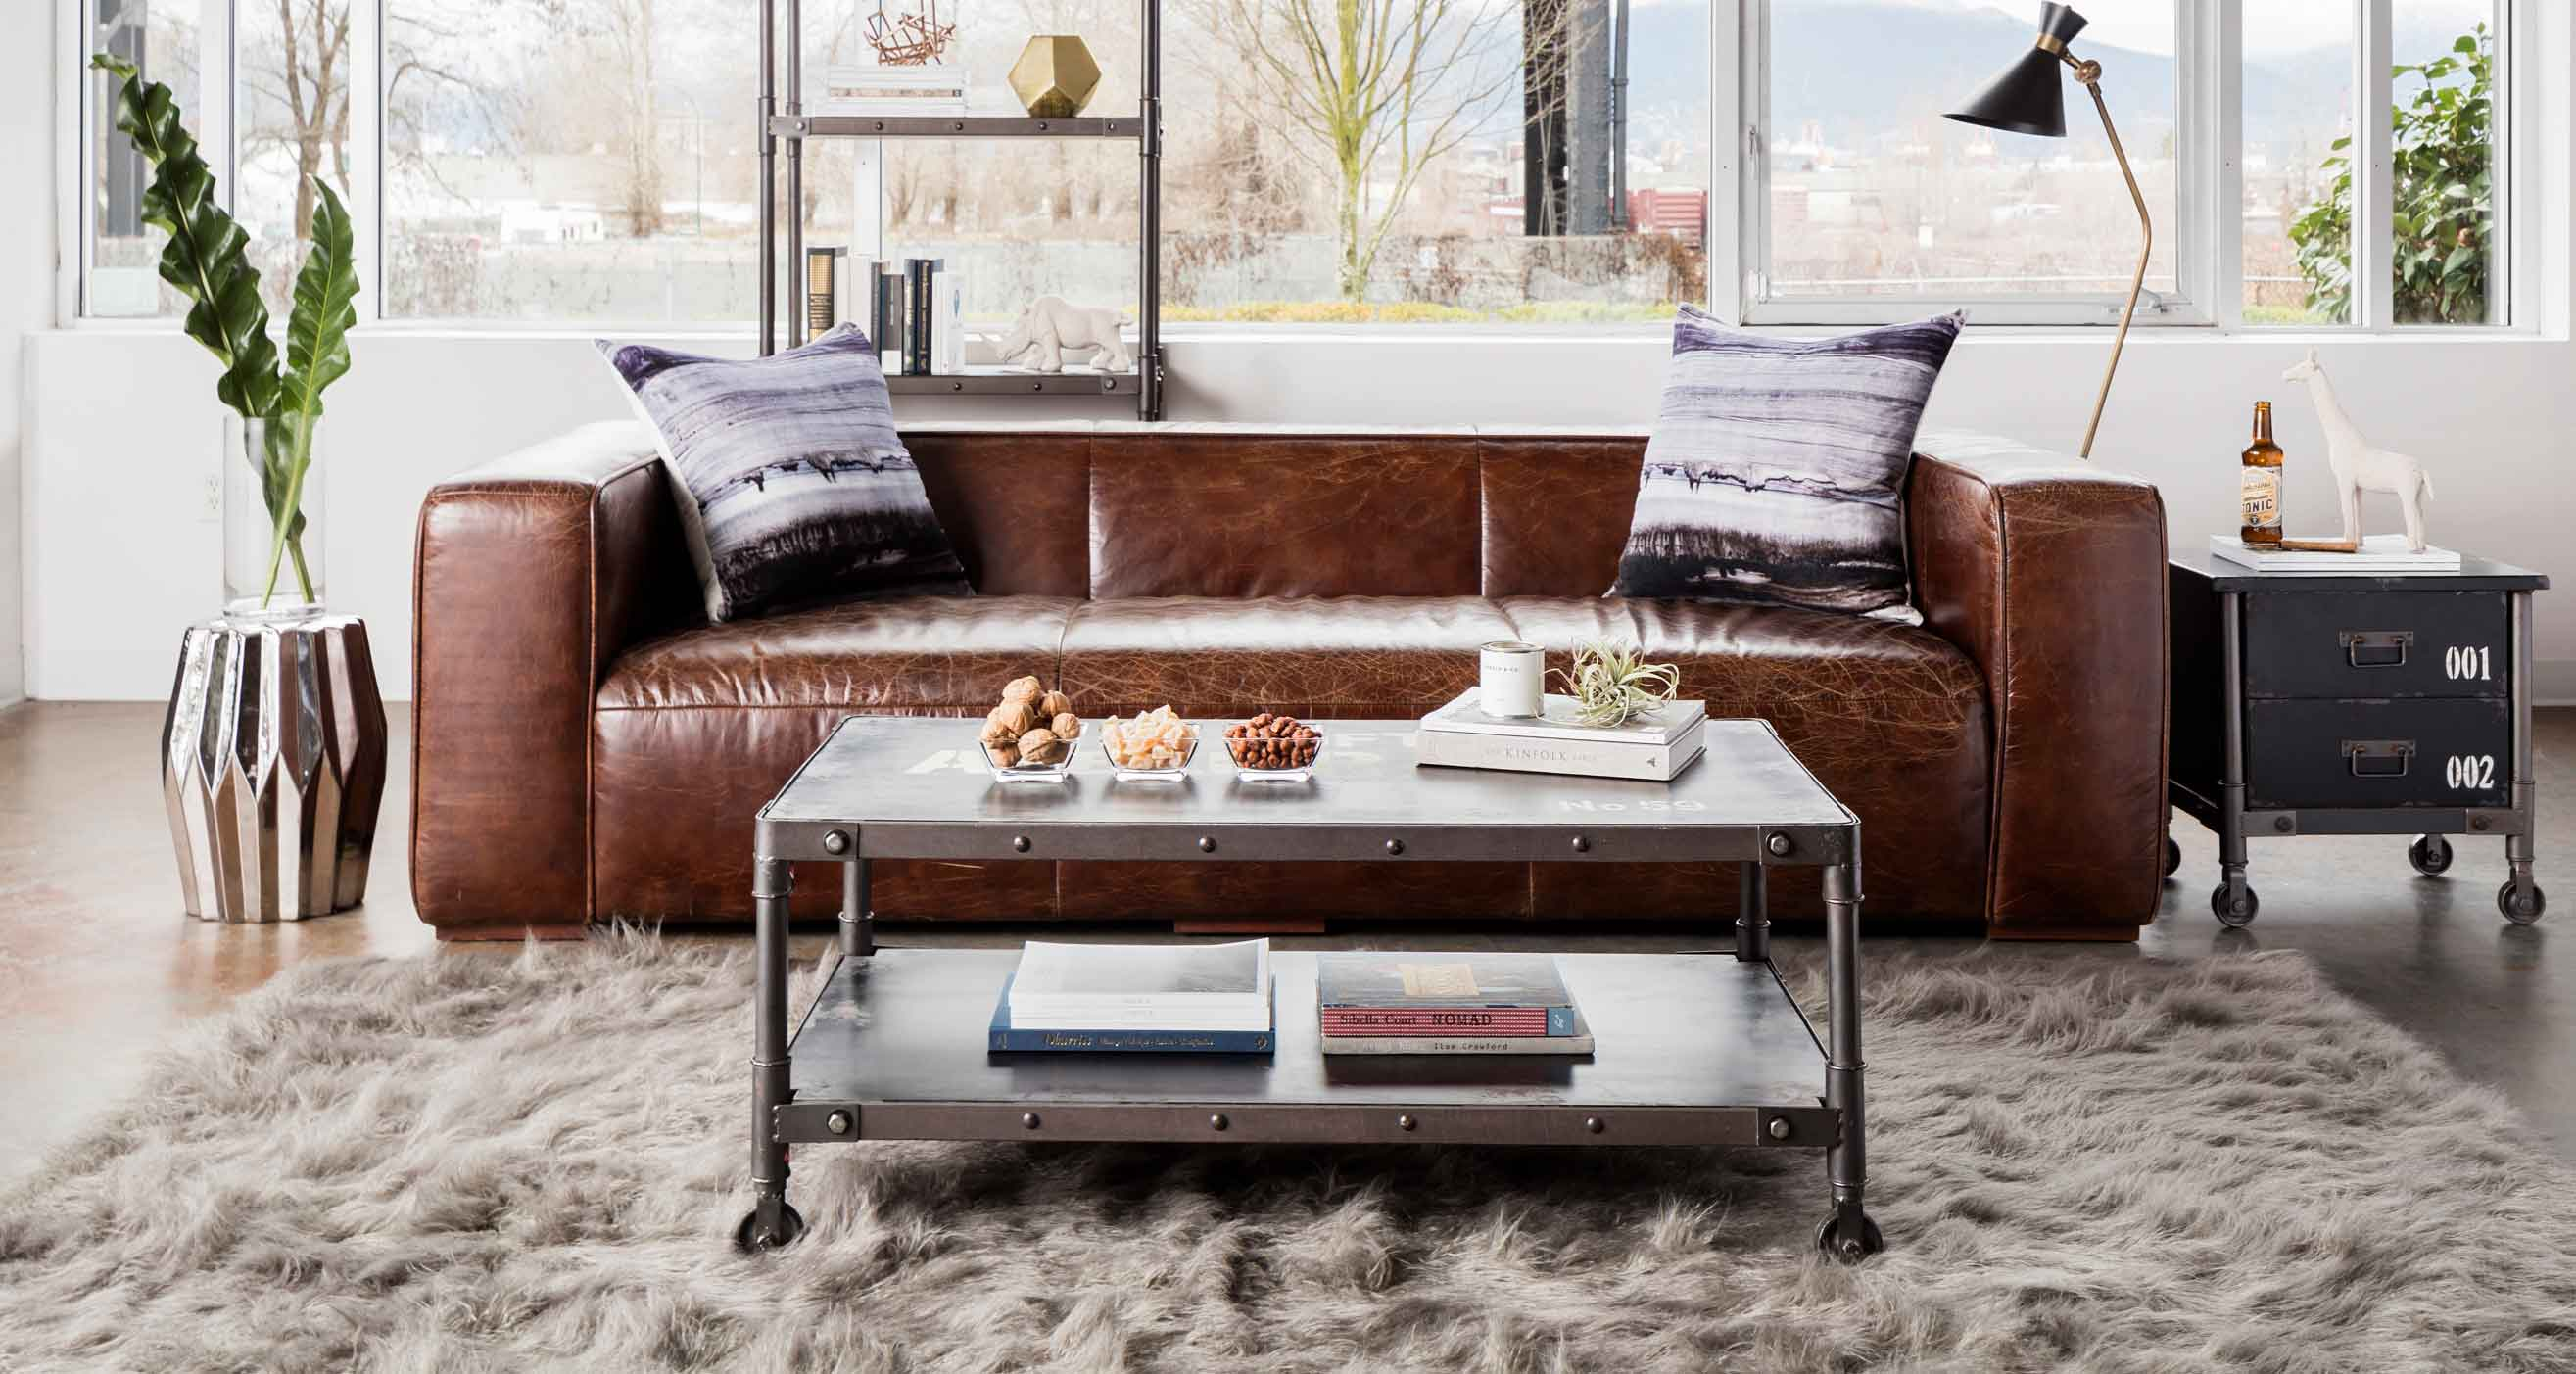 Top 10 Industrial Home Decor Ideas Styling Guide Froy Com